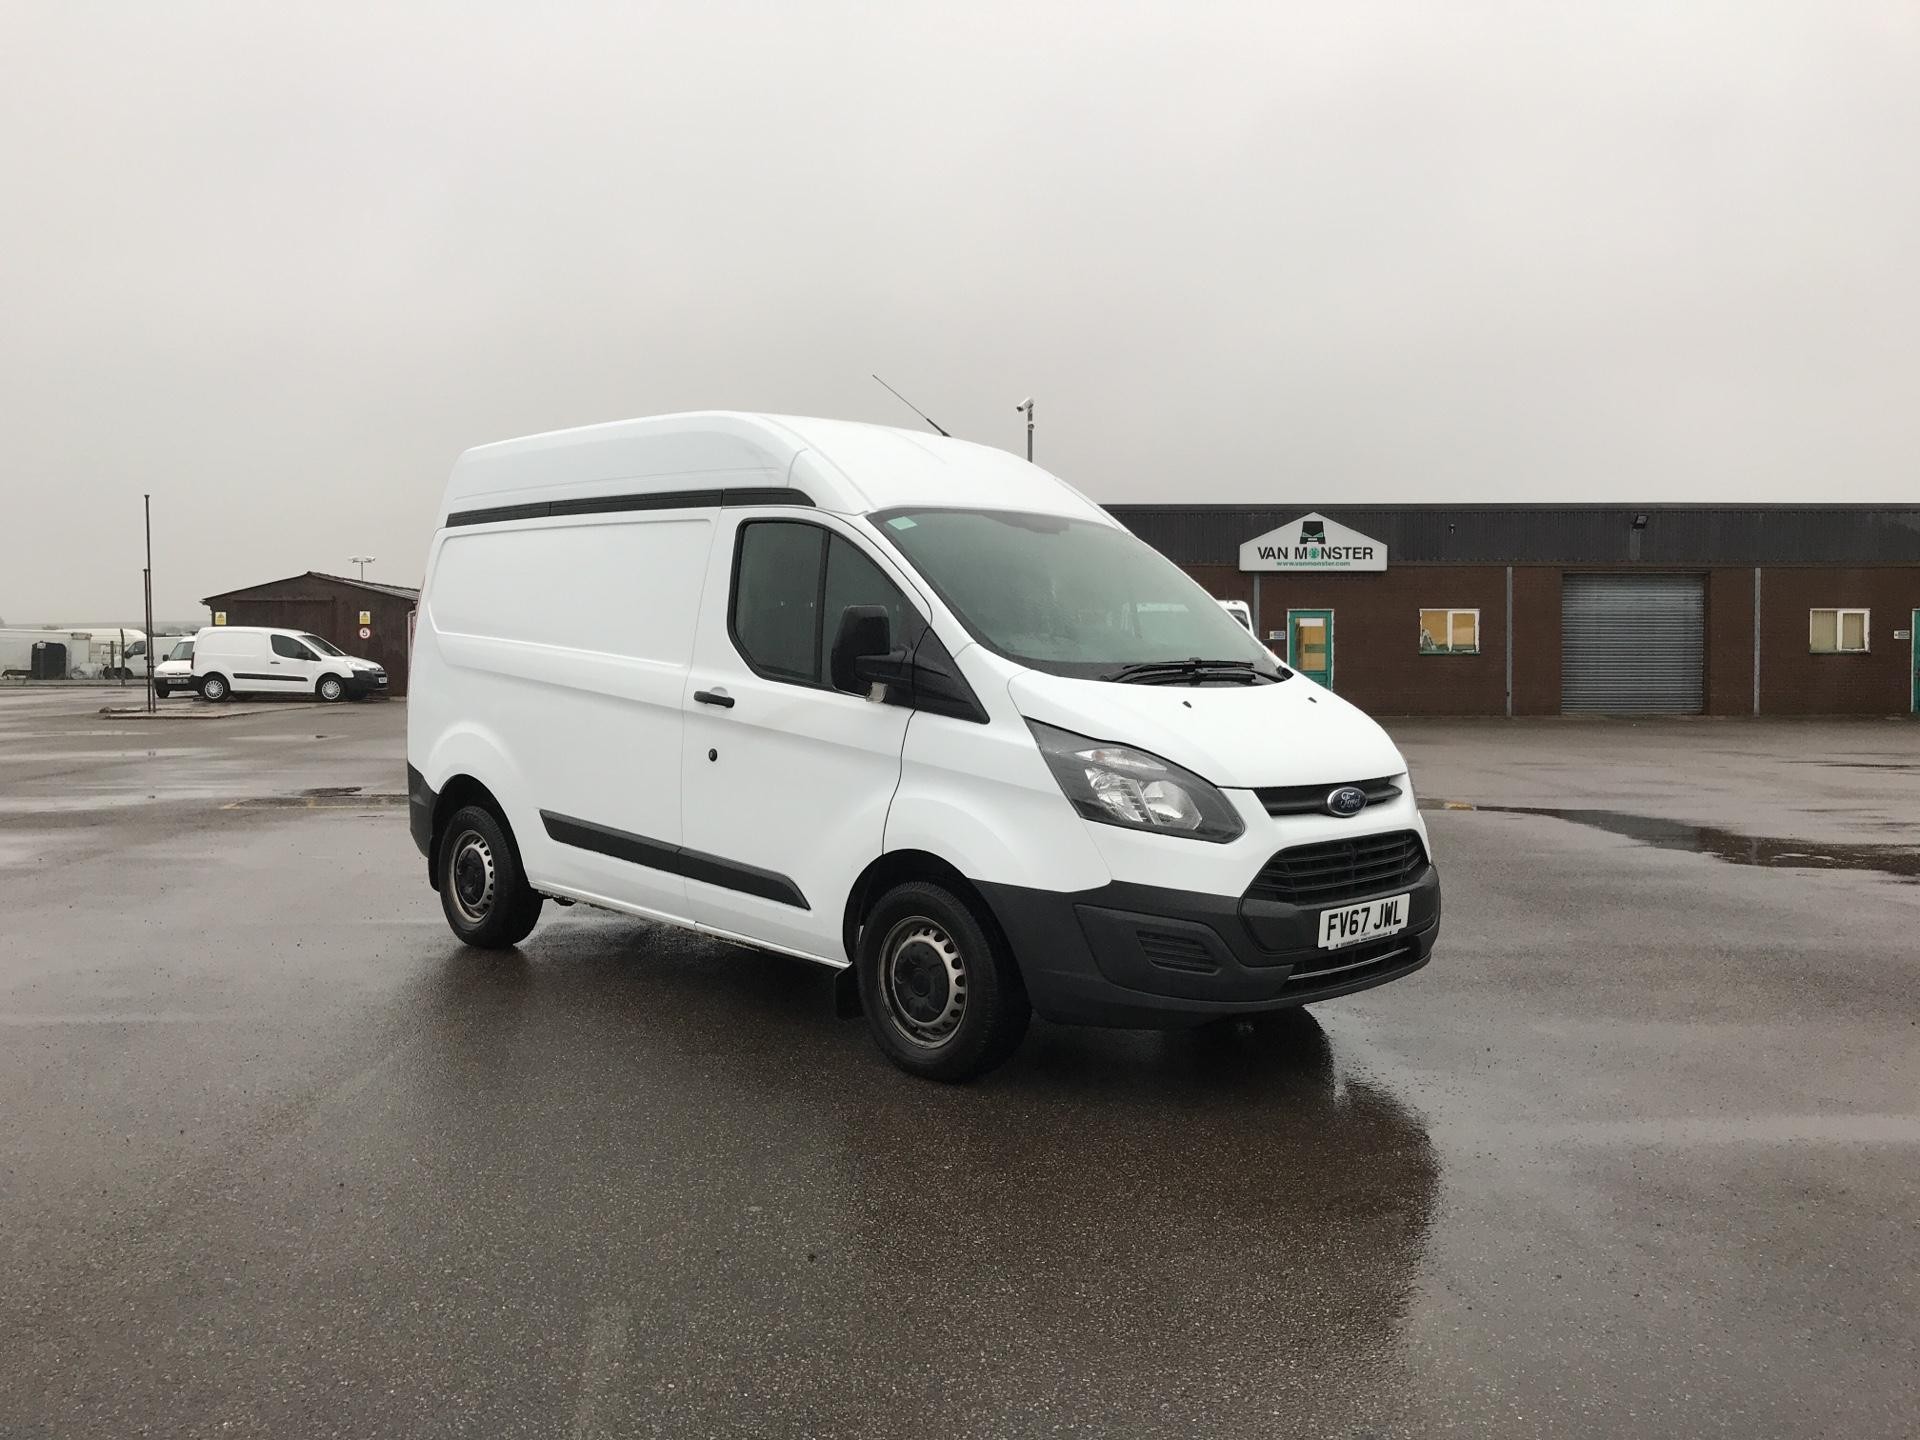 2018 Ford Transit Custom 290 L1 H2 DIESEL FWD 2.0 TDCI 130PS HIGH ROOF VAN EURO 6 (FV67JWL)